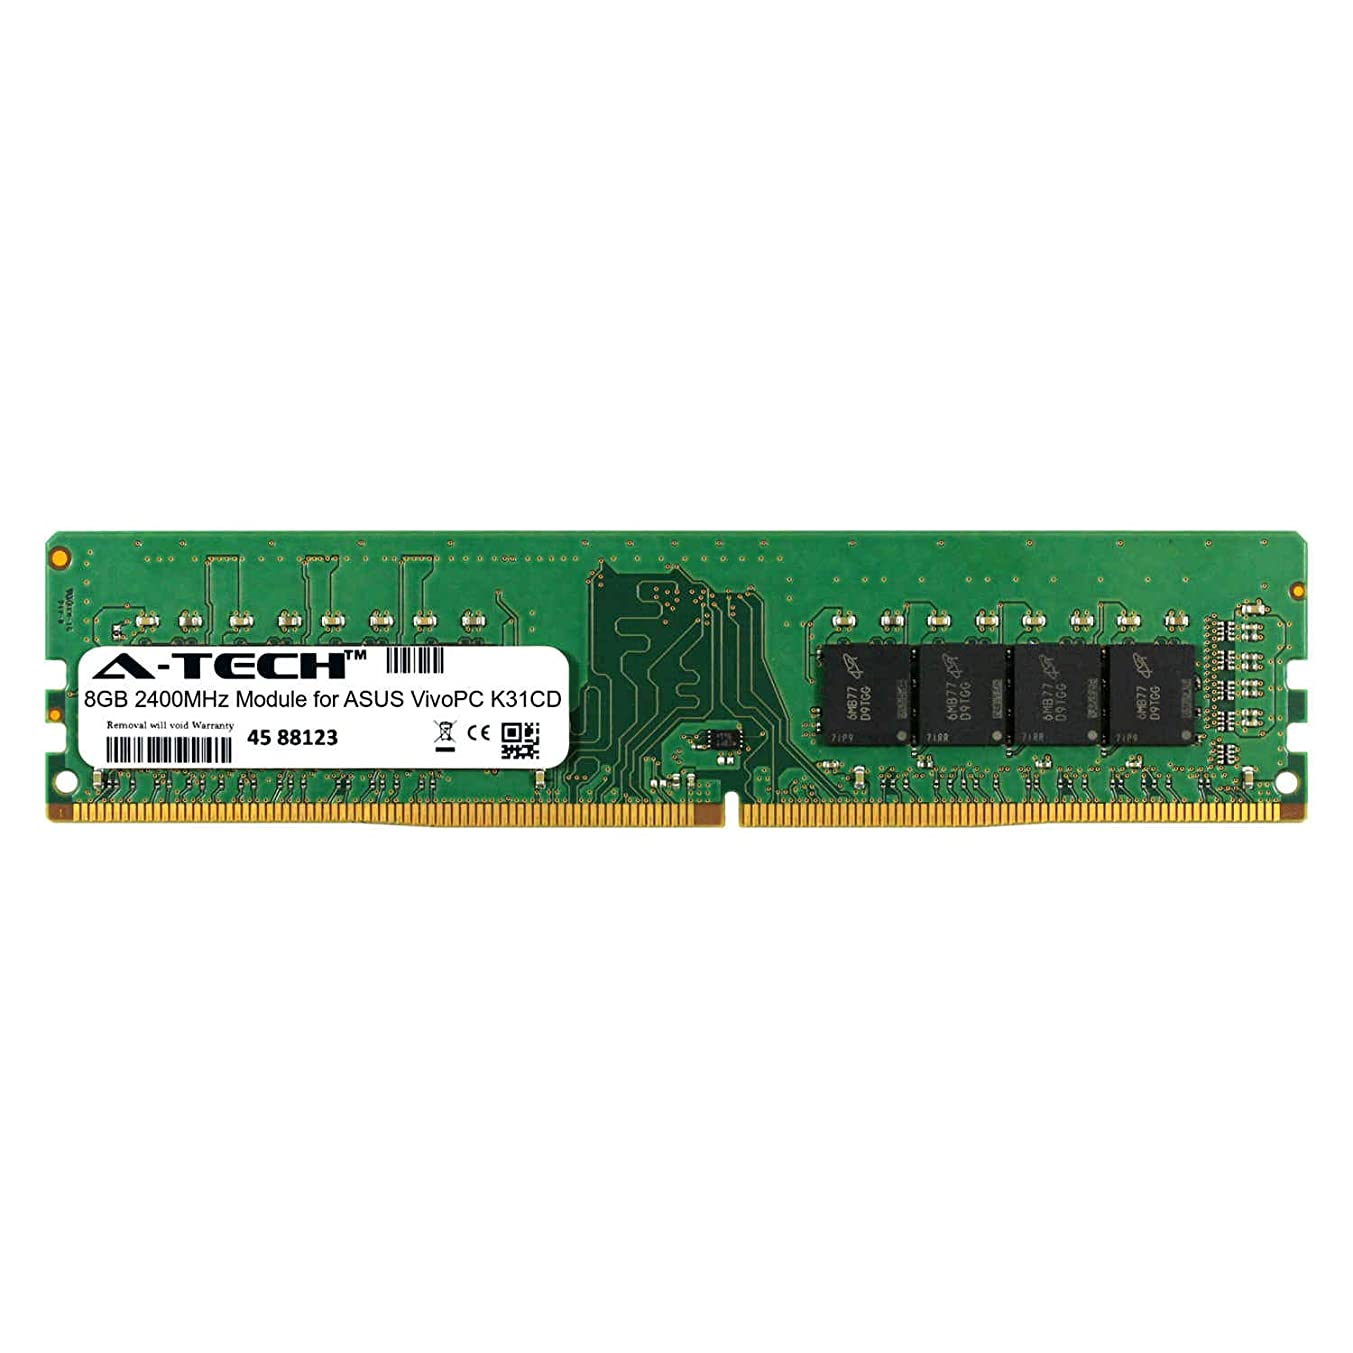 A-Tech 8GB Module for ASUS VivoPC K31CD Desktop & Workstation Motherboard Compatible DDR4 2400Mhz Memory Ram (ATMS360308A25820X1)